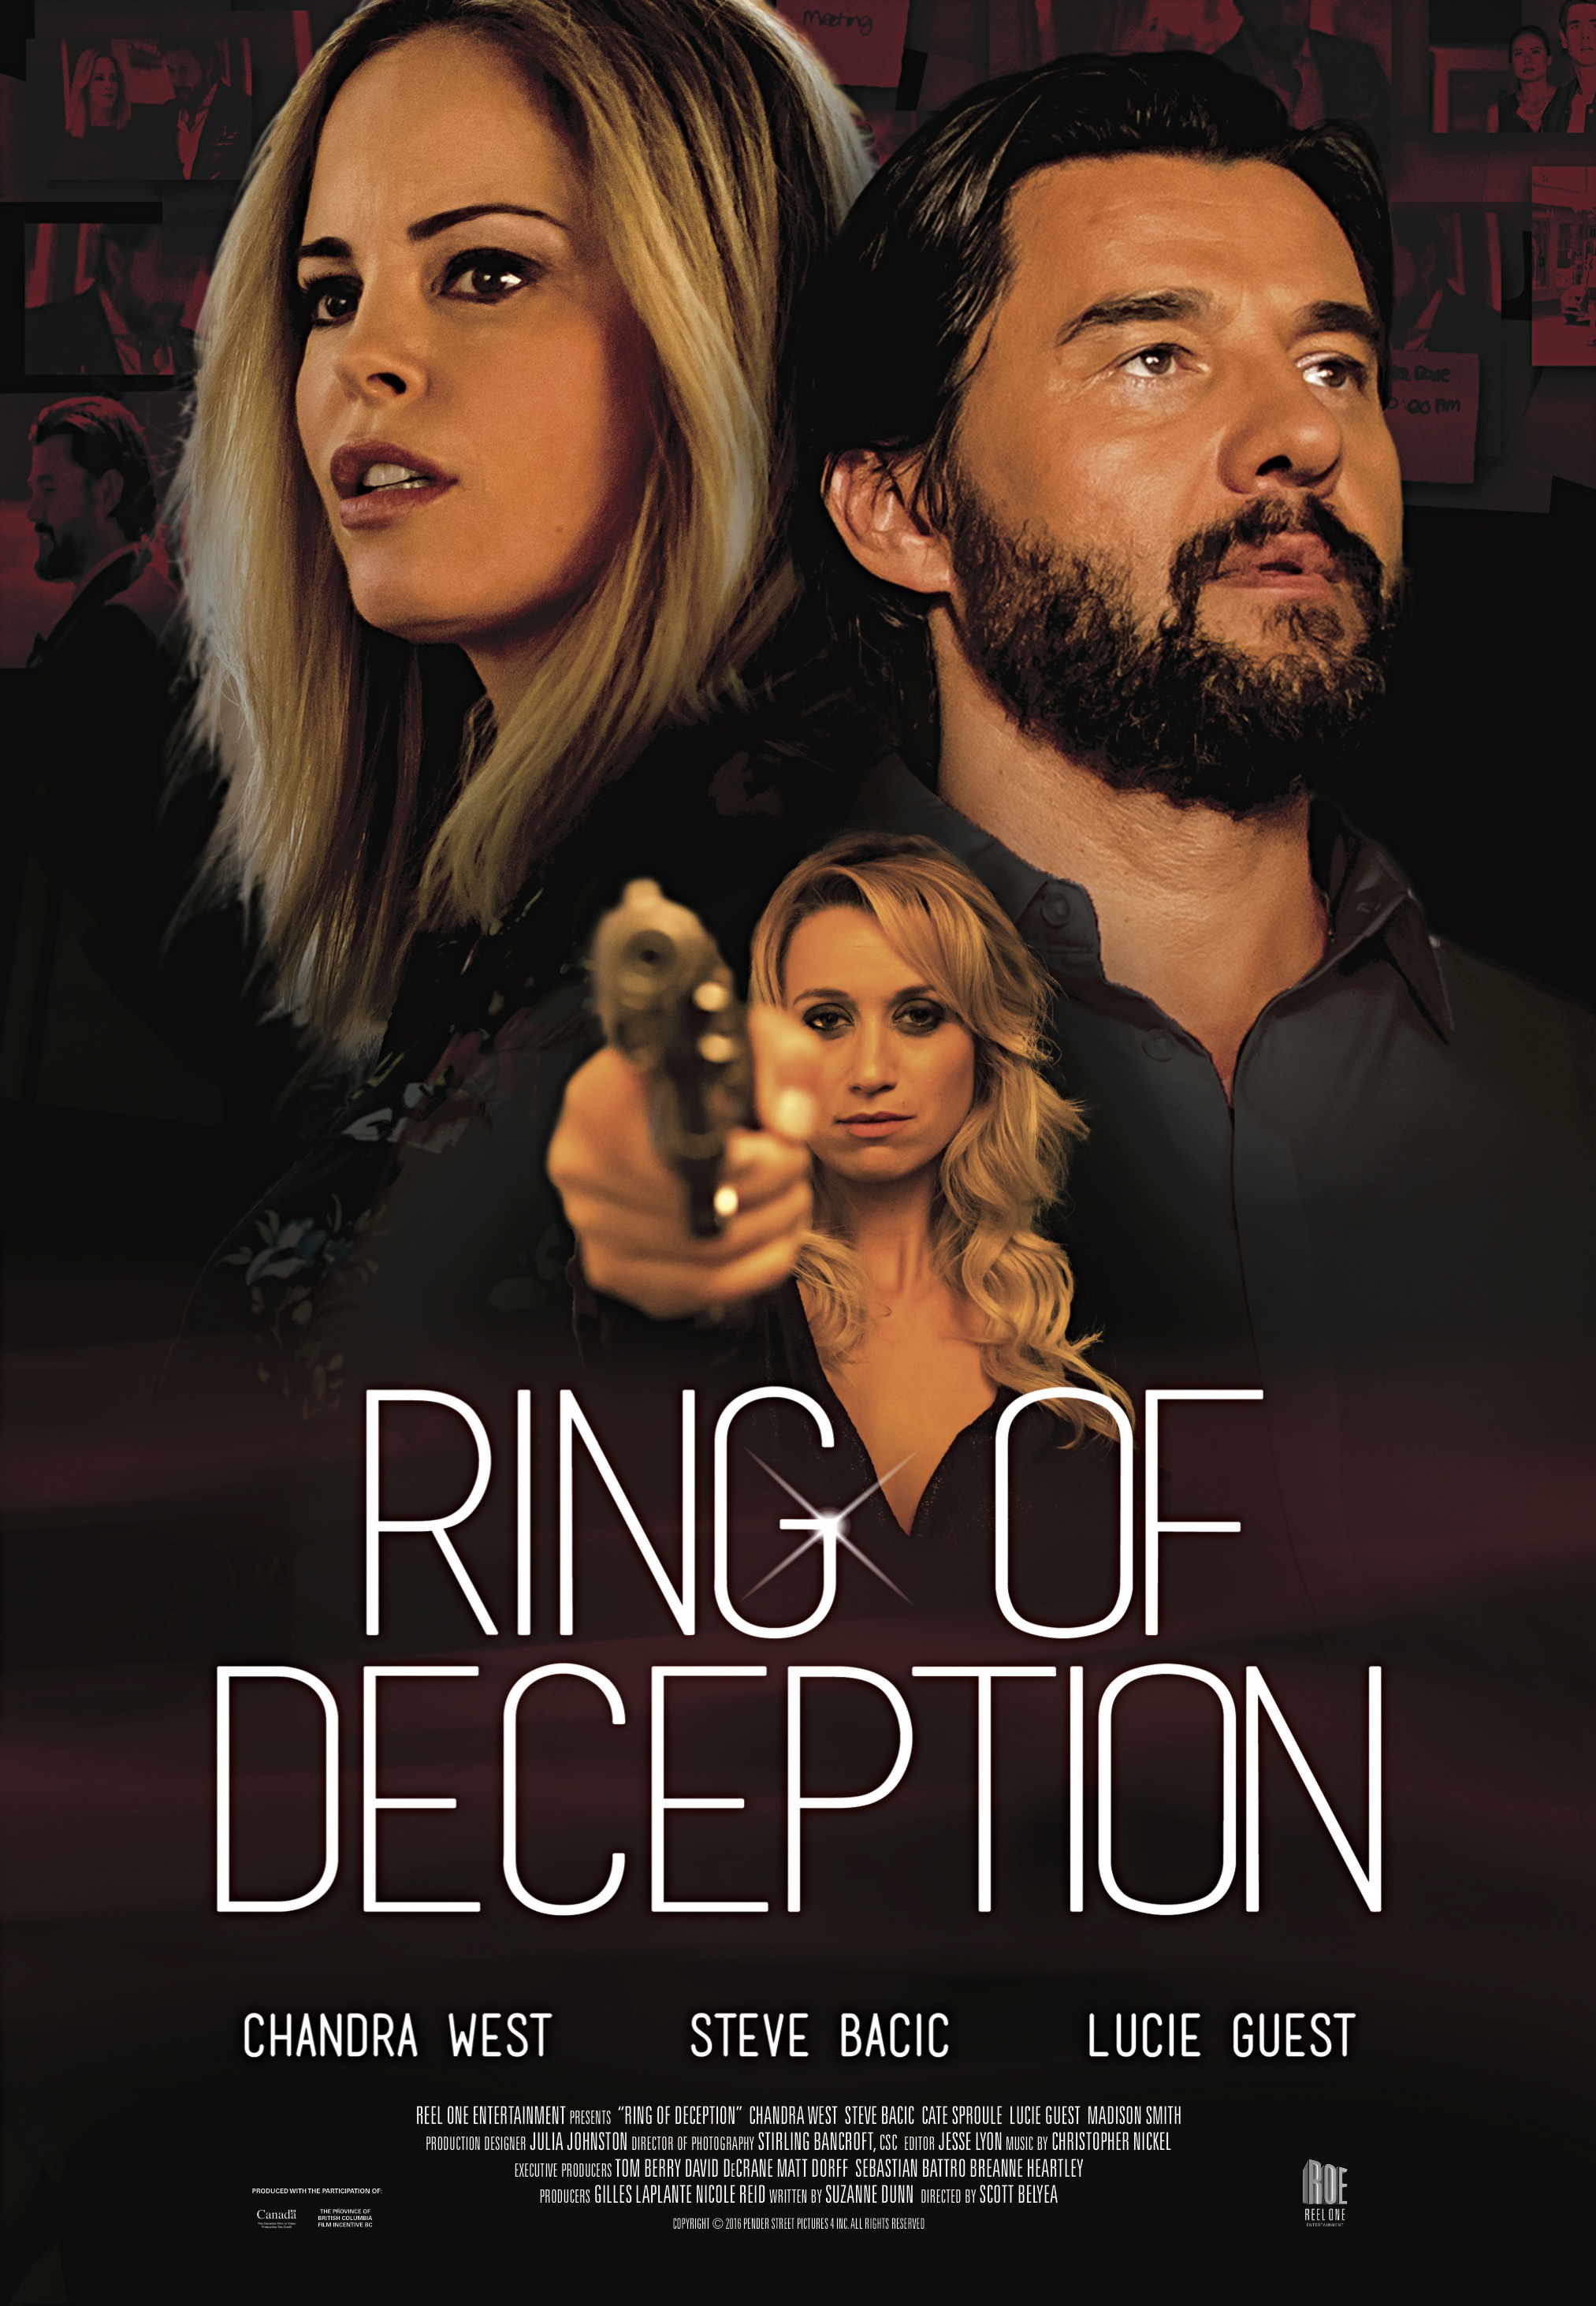 Ring Of Deception (2017) 720p WEBRip [Dual Audio] [Hindi – English] x264 ESubs